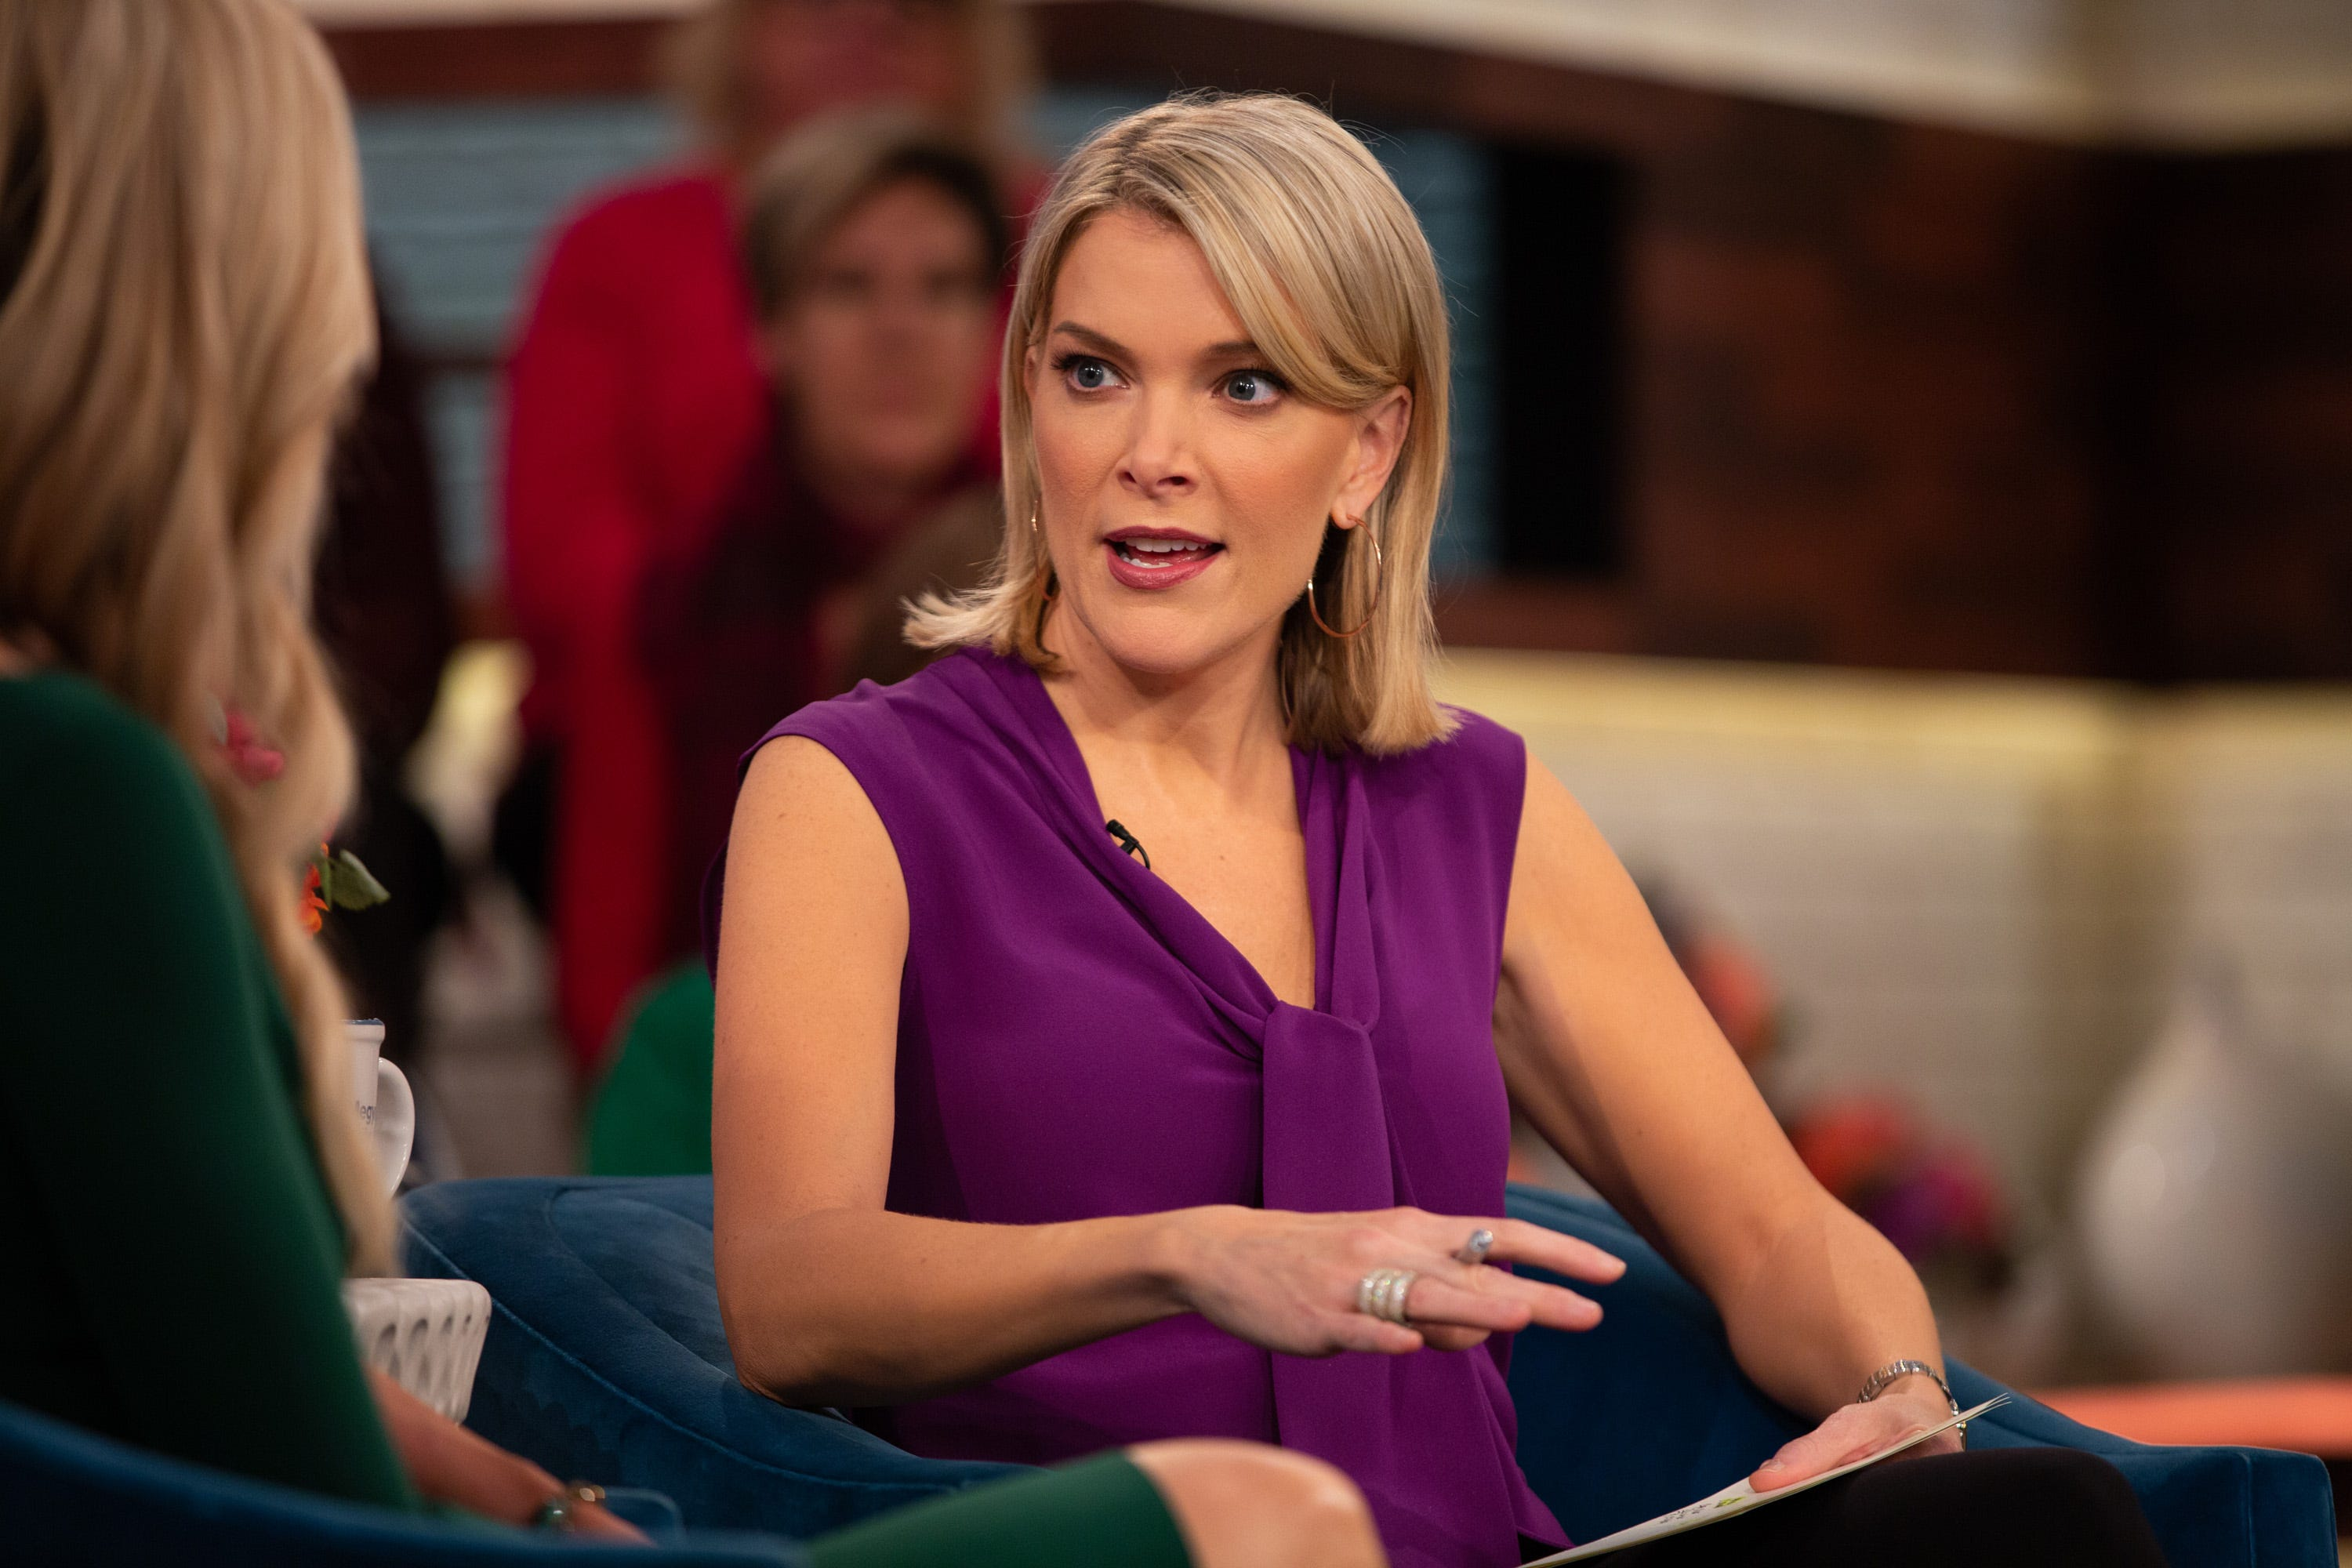 Megyn Kelly nude photos 2019